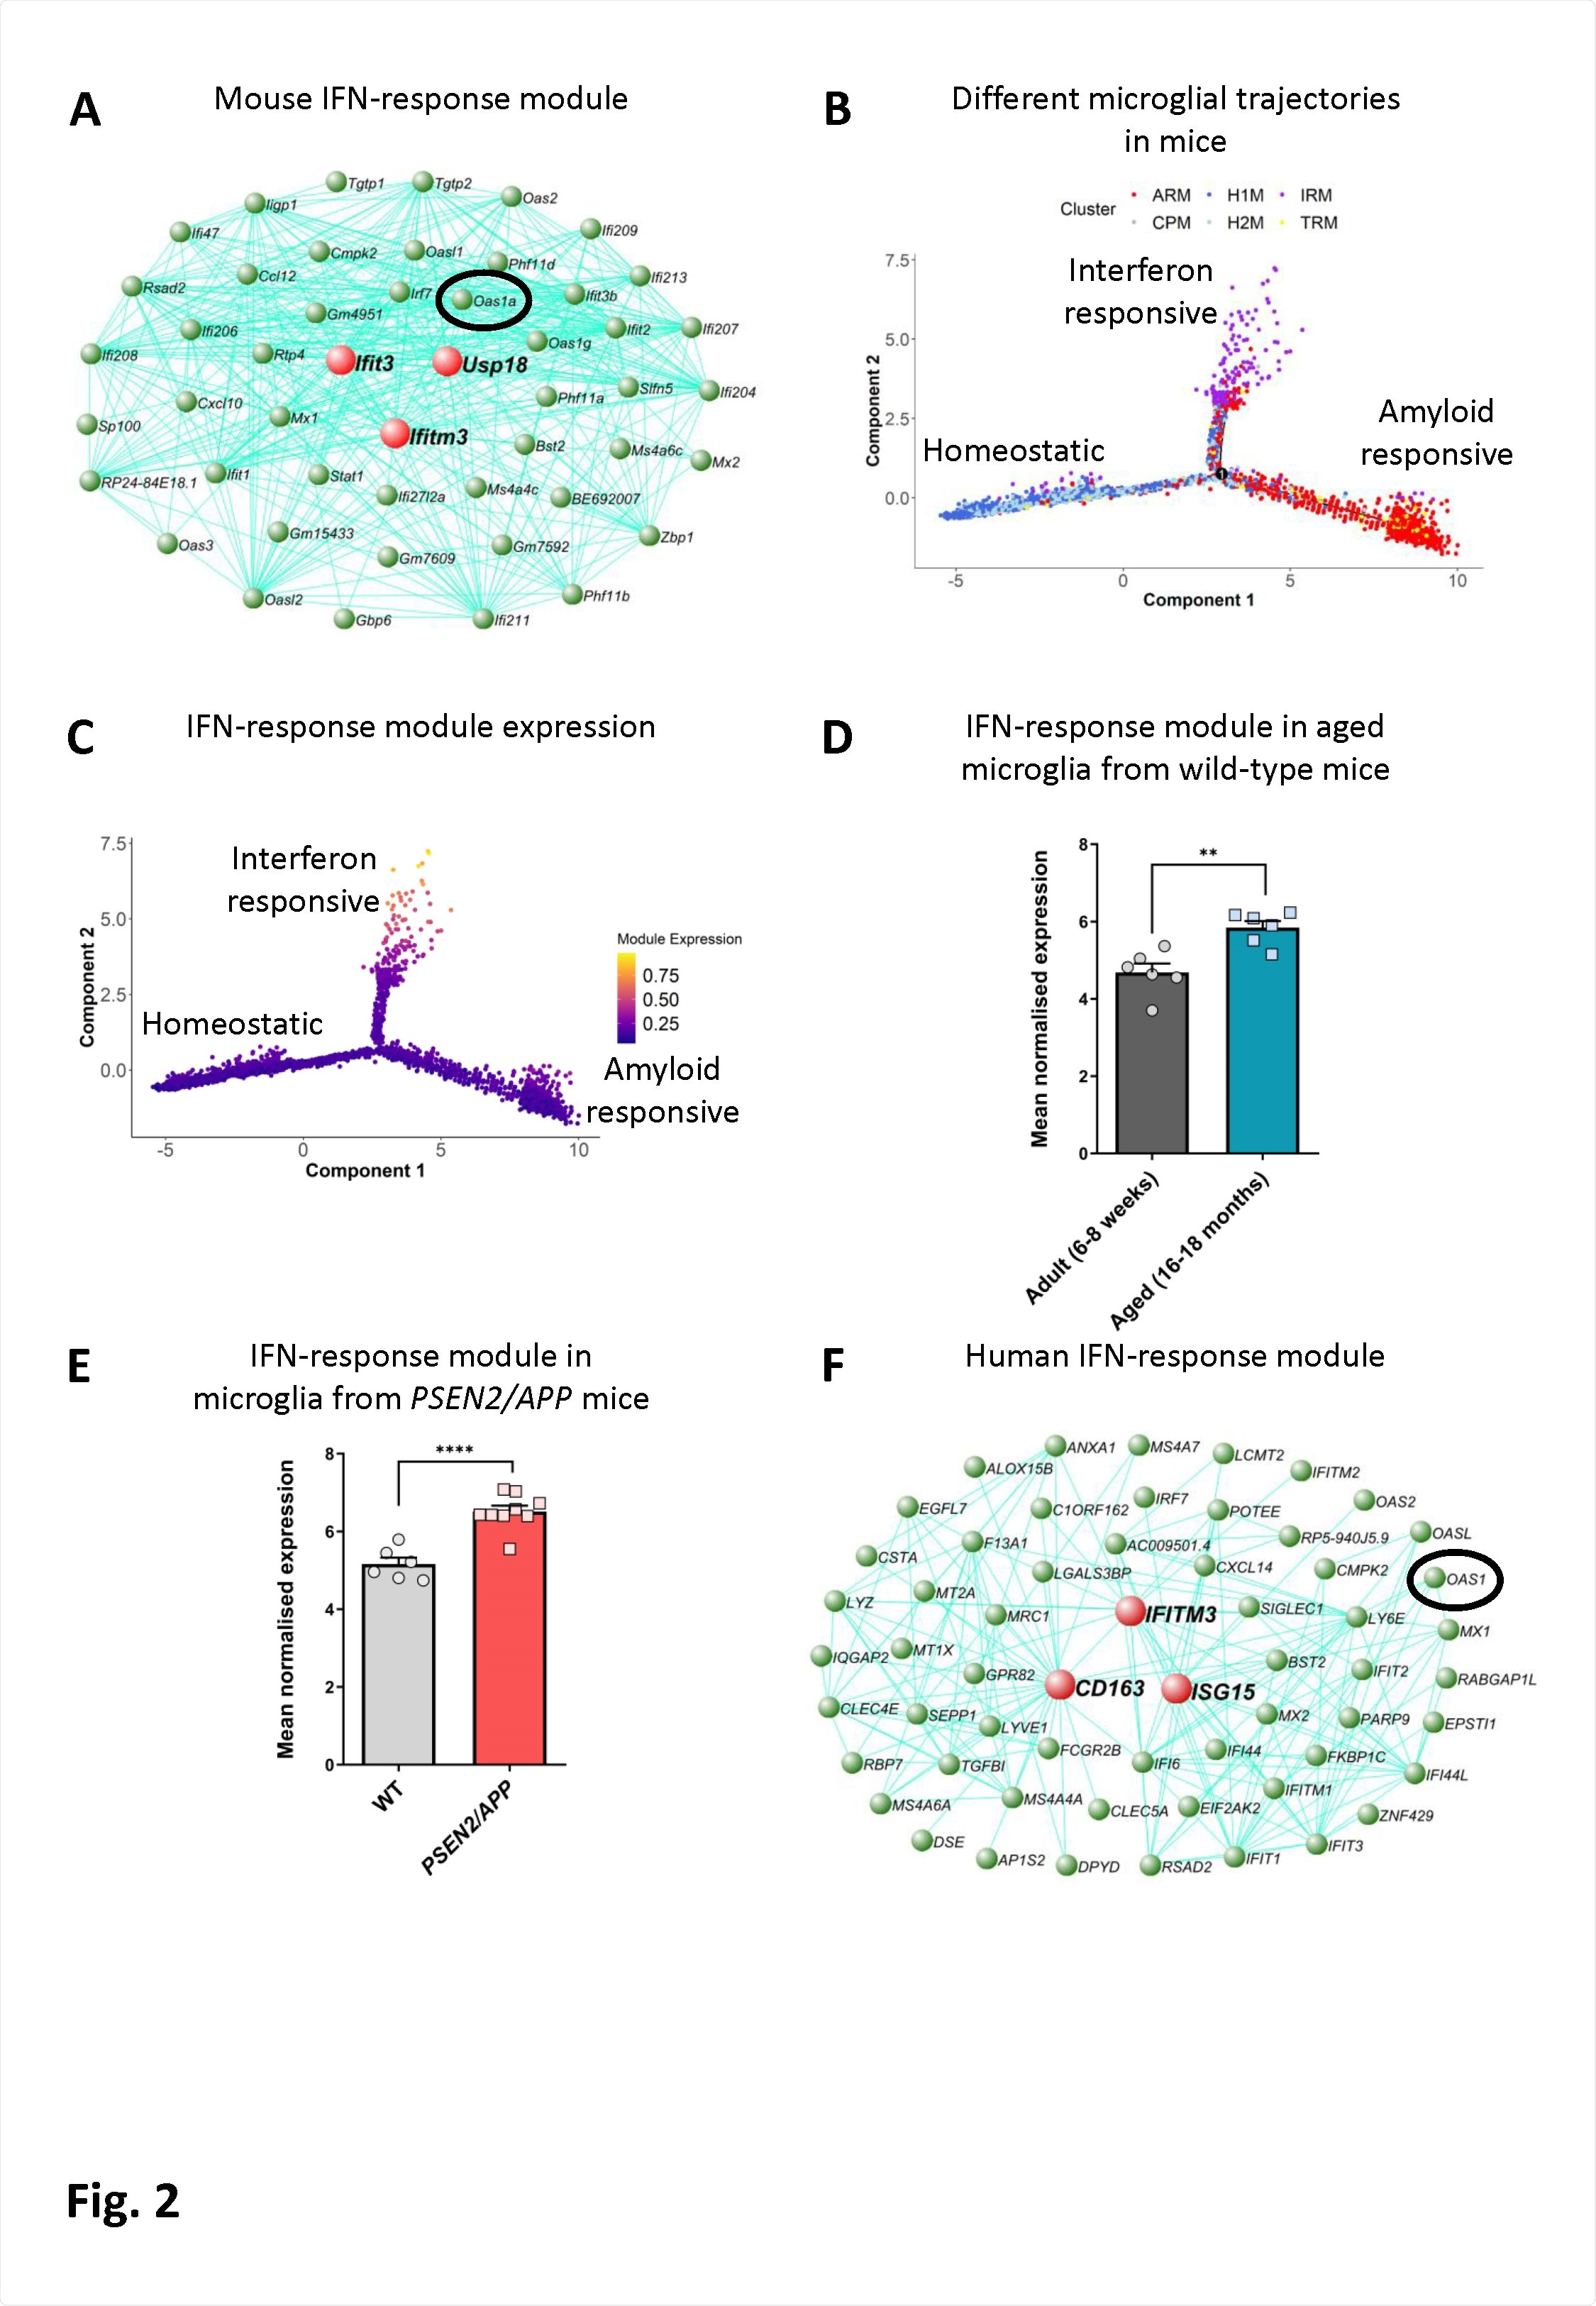 An interferon-response associated gene module is present along a distinct microglial activation trajectory upregulated in aged mice, mice with amyloid pathology and in humans with AD. A) The genetic network containing Oas1a from microglial cells isolated from wild-type and APPNL-G-F KI mice at 3, 6, 12 and 21 months of age analysed by scRNA-seq (Sala Frigerio et al., 2019). The 50 genes showing the highest connectivity are plotted, and Oas1a is highlighted. Green nodes represent genes, edge lines represent coexpression connections, and the central large red nodes are the hub genes (full network given in Table S2). (B) Semi-supervised pseudotime ordering of microglial cells isolated from wild-type and APPNL-G-F KI mice as above based on expression (Sala Frigerio et al., 2019), with Monocle 2, shows homeostatic cells as the root state, and ARM and IRM as the endpoints of distinct activation trajectories. C) The gene module containing Oas1a is upregulated along the IRM-associated activation trajectory. The expression of this module is relatively absent from both the root homeostatic state and the ARM trajectory. D) Mean normalised expression of the 60 most central genes in the interferon response module is greater in microglia isolated from aged wild-type relative to young adult mice (6-8-weeks versus 16-18-months of age;